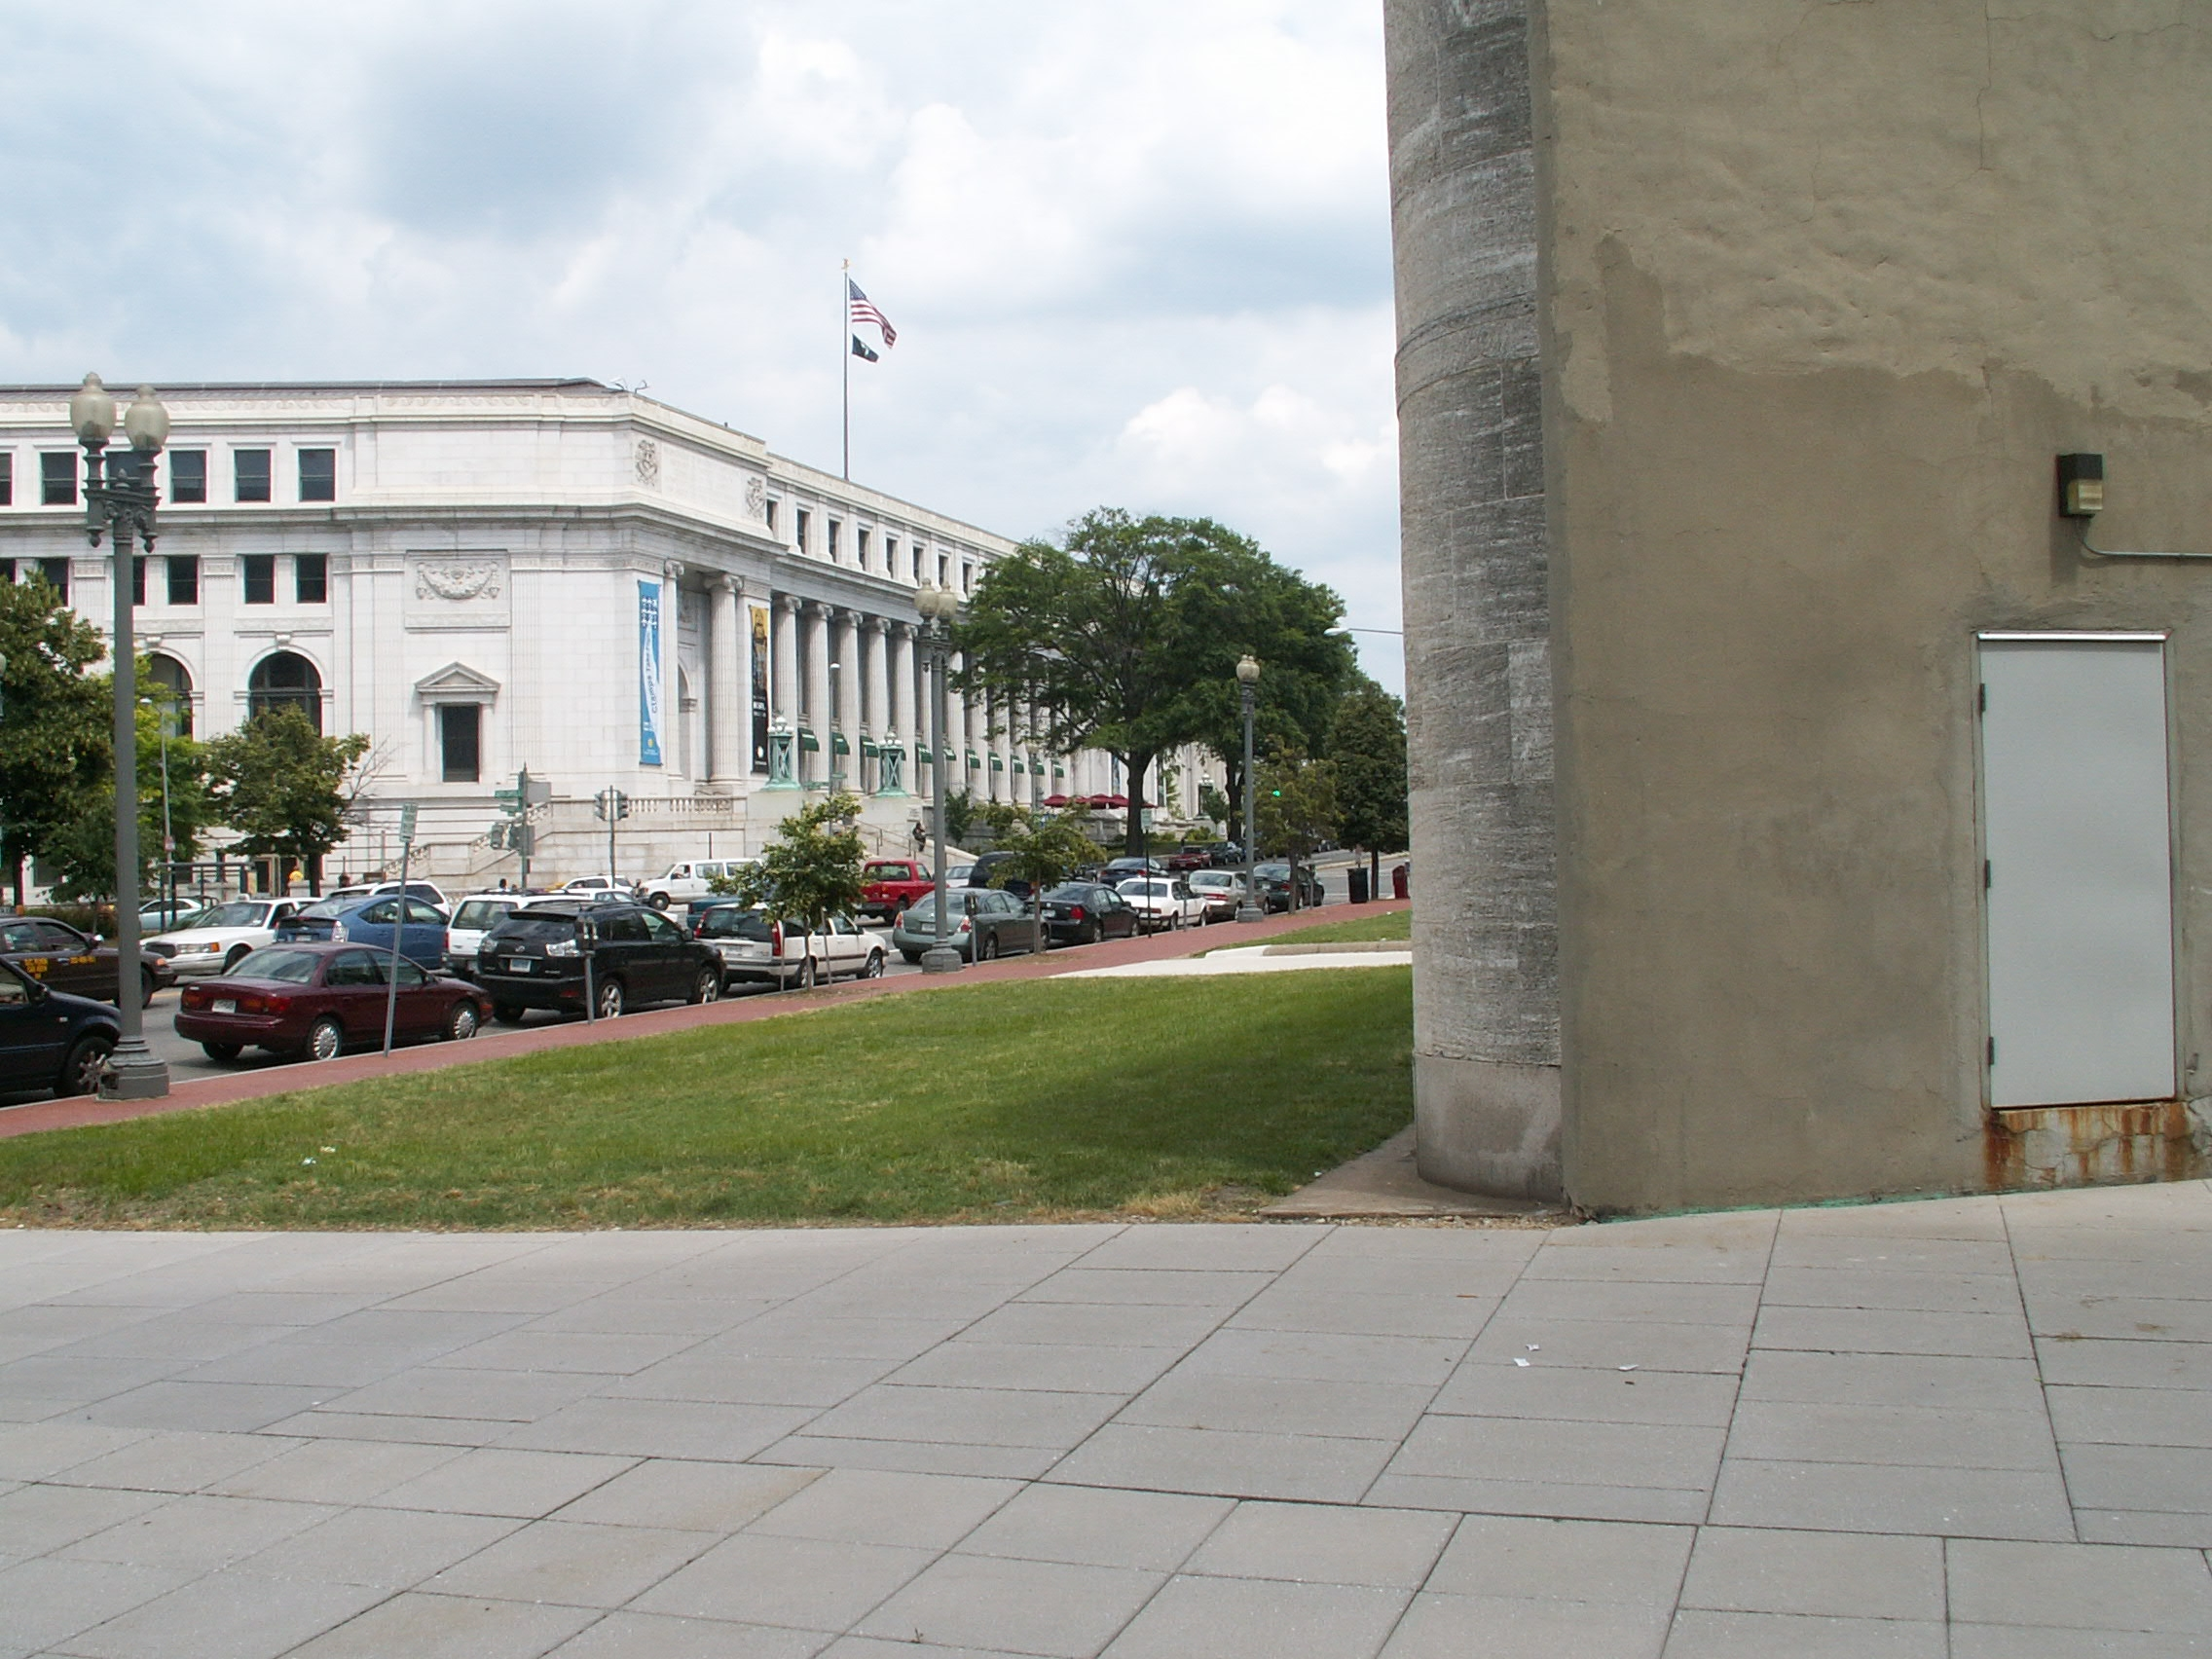 Restaurant exterior architecture -  The Restaurant Of The Same Name Far Larger Modern Structures Stand Behind It And Diagonally Across Massachusetts Ave Lies The Old Main Post Office